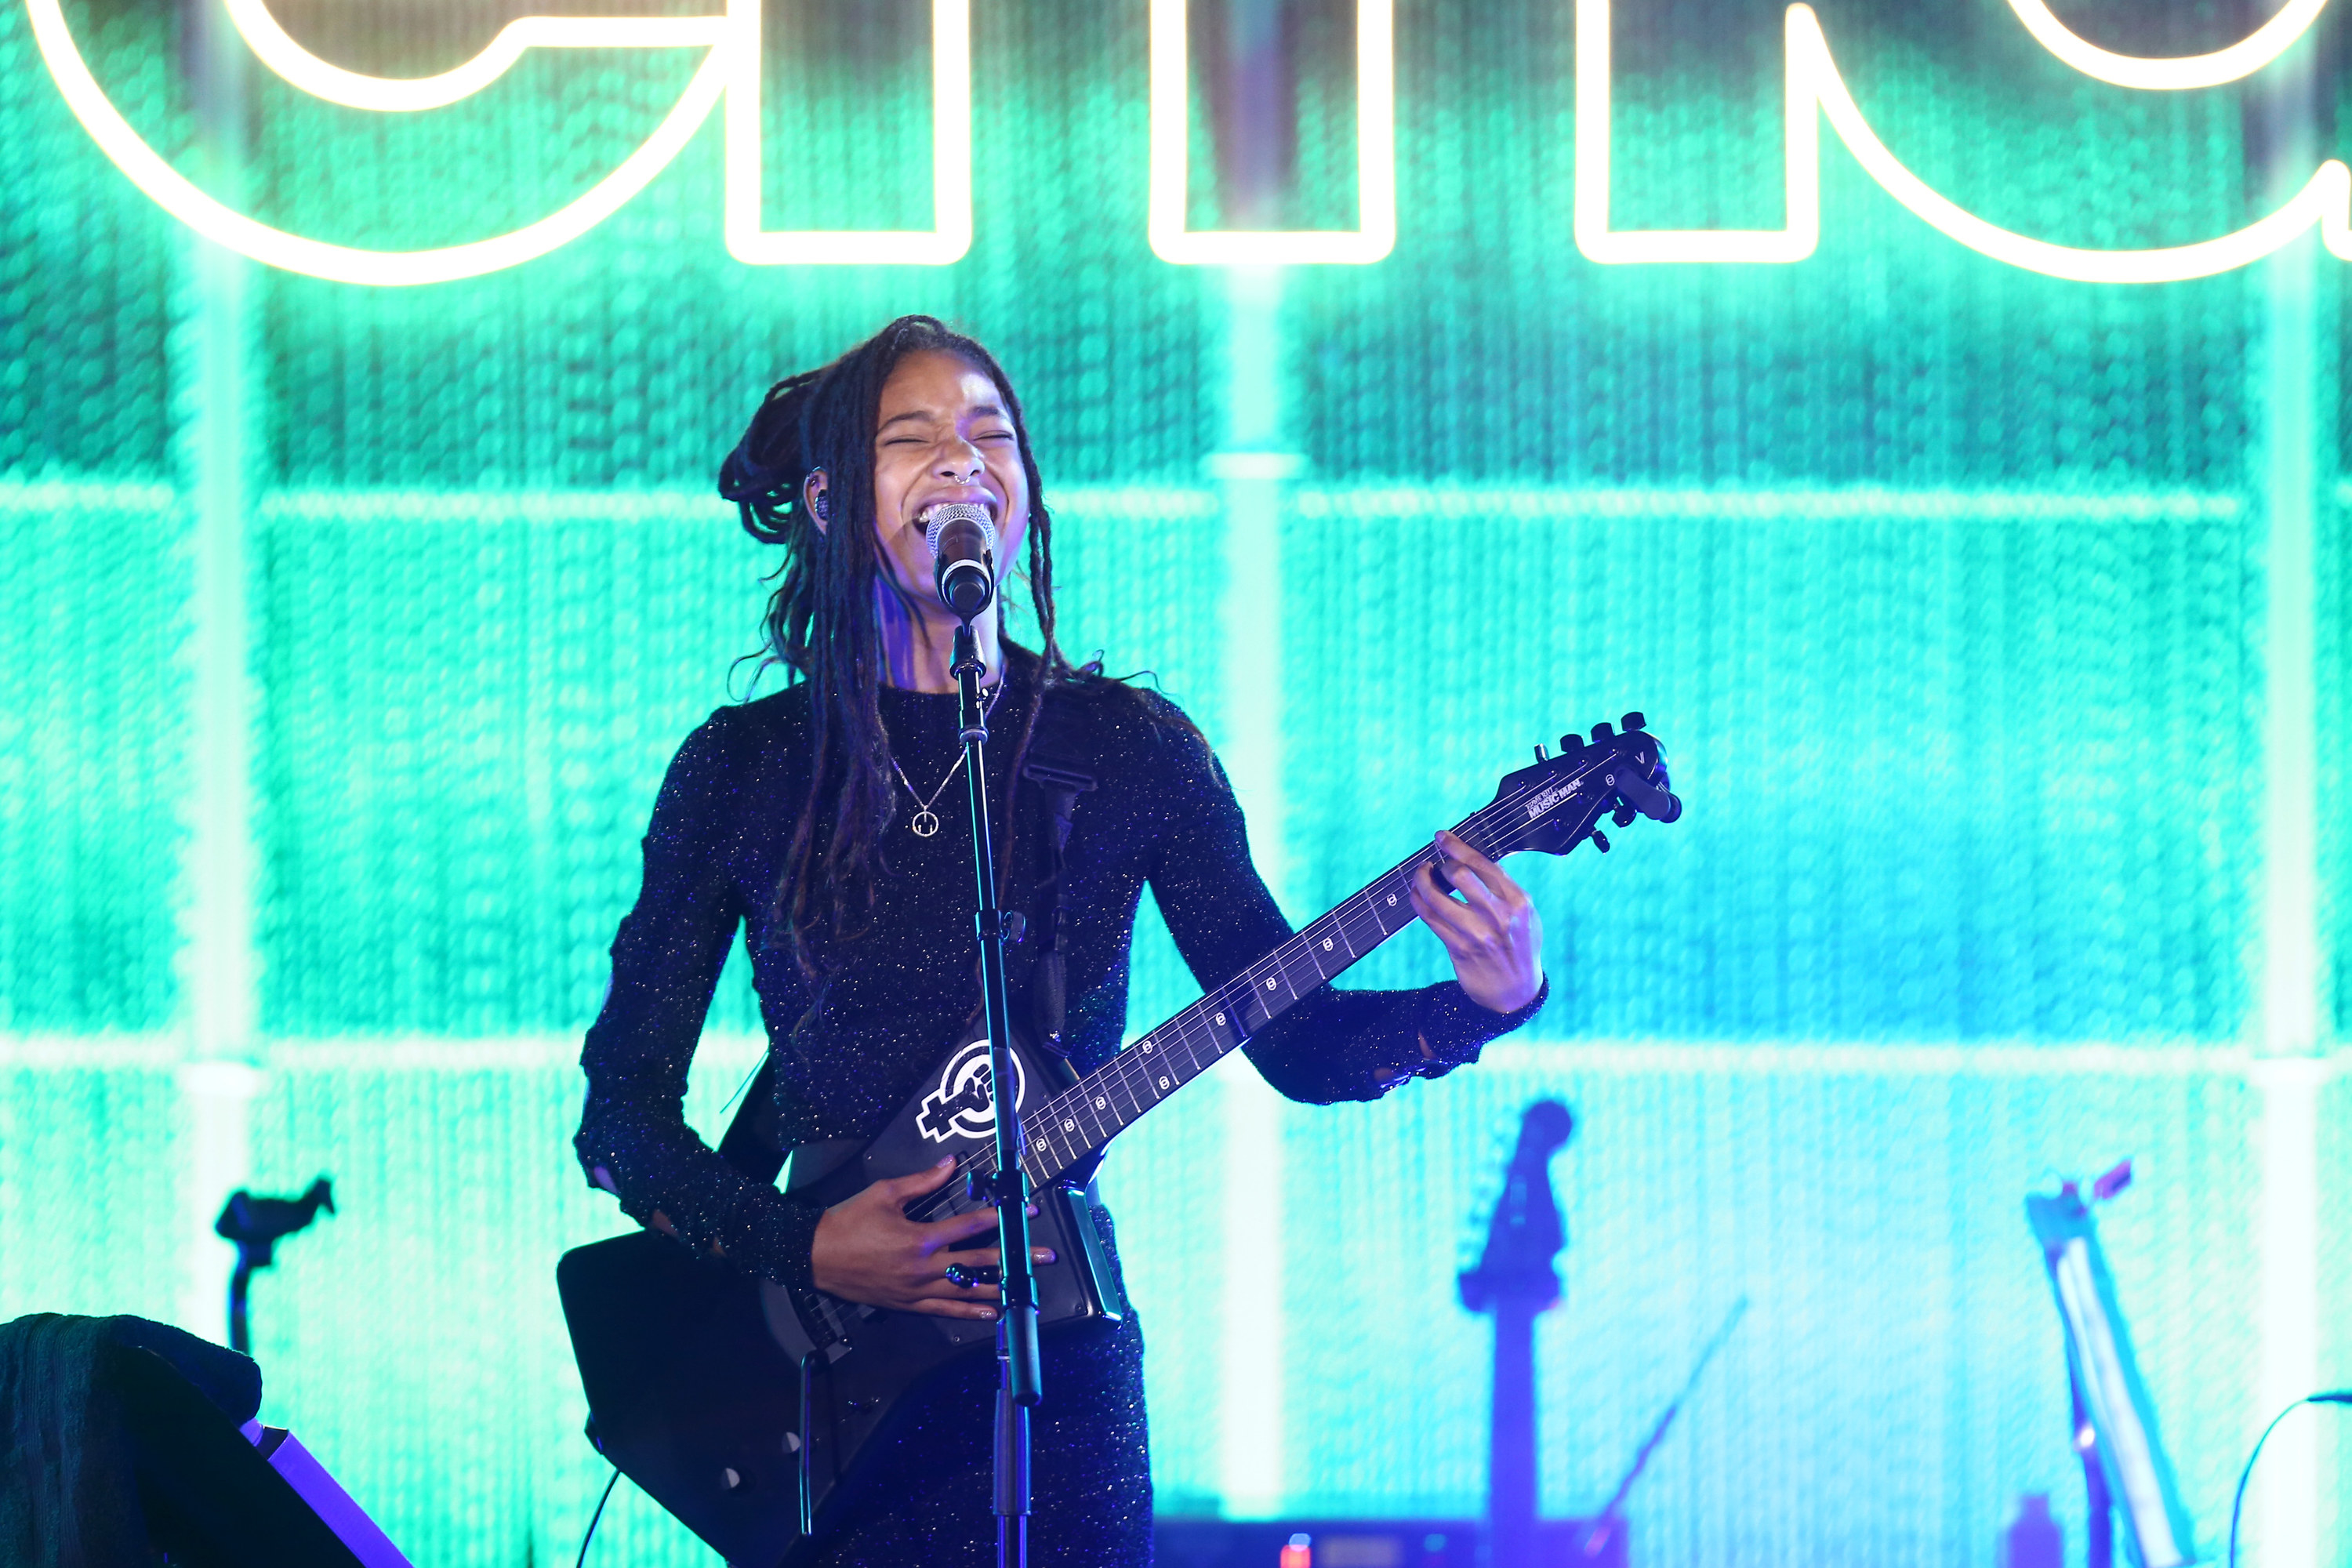 Willow Smith performs onstage with a guitar